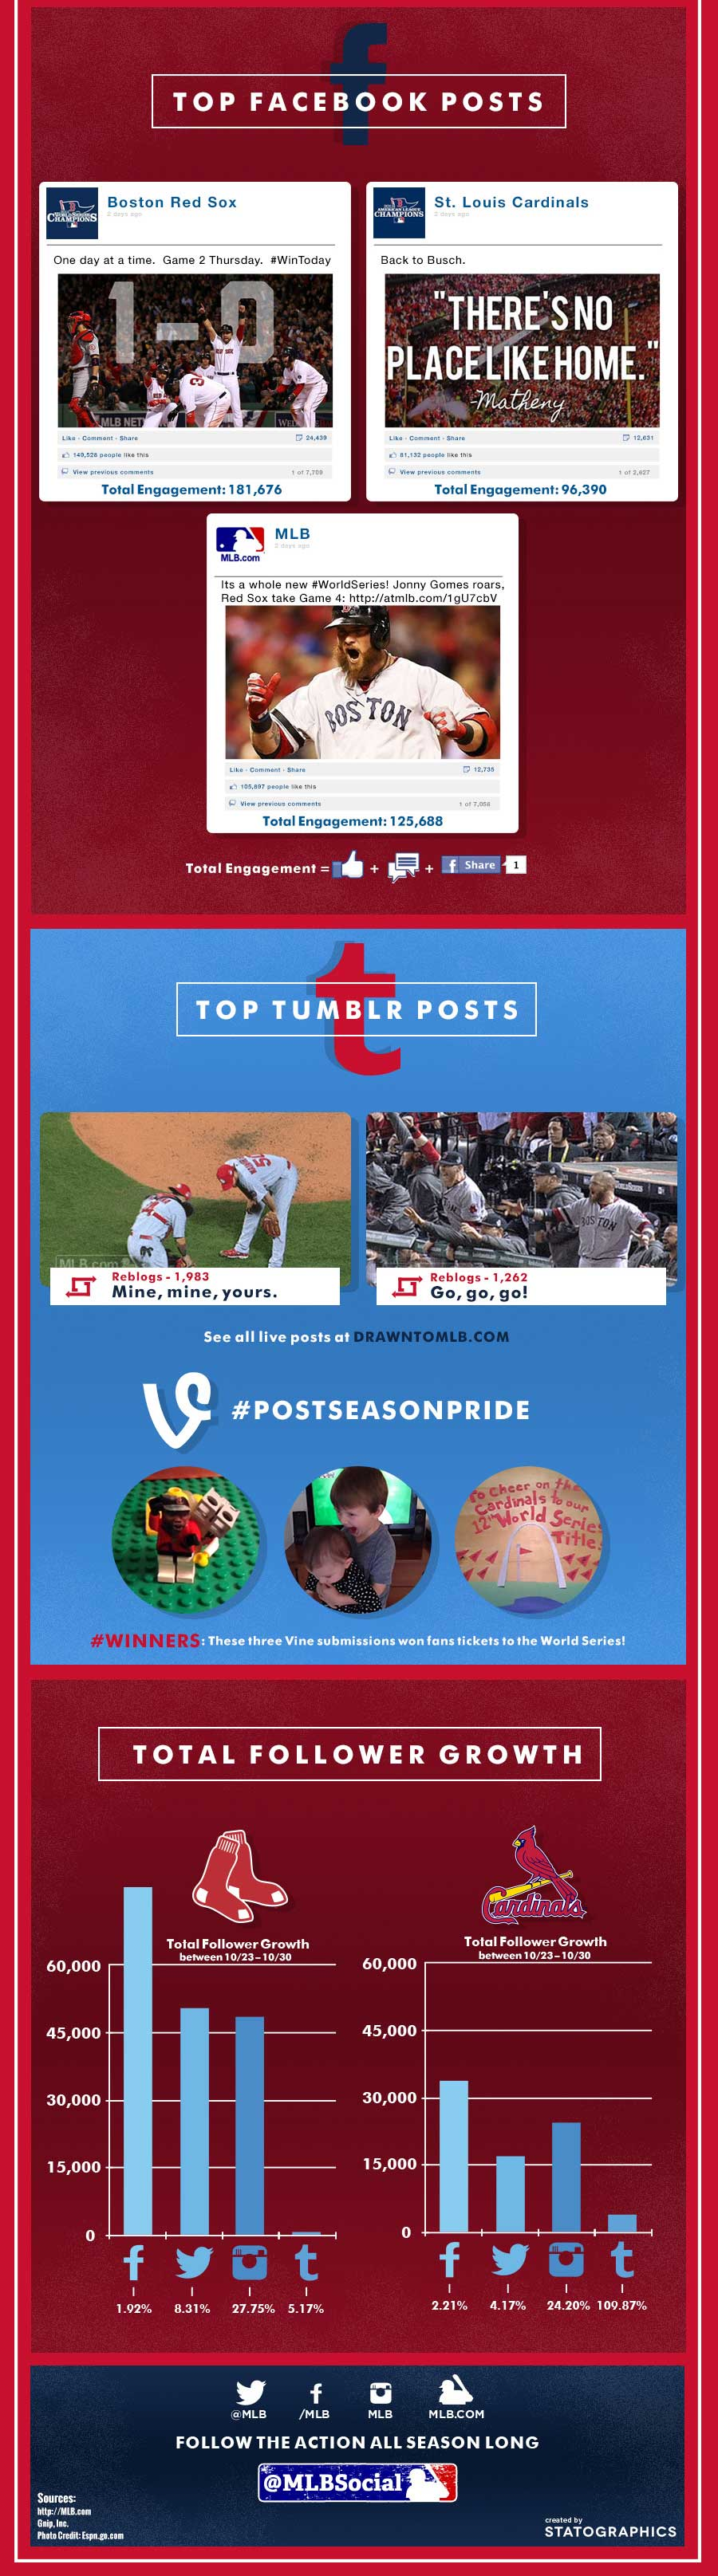 The social media story behind the @RedSox #WorldSeries victory